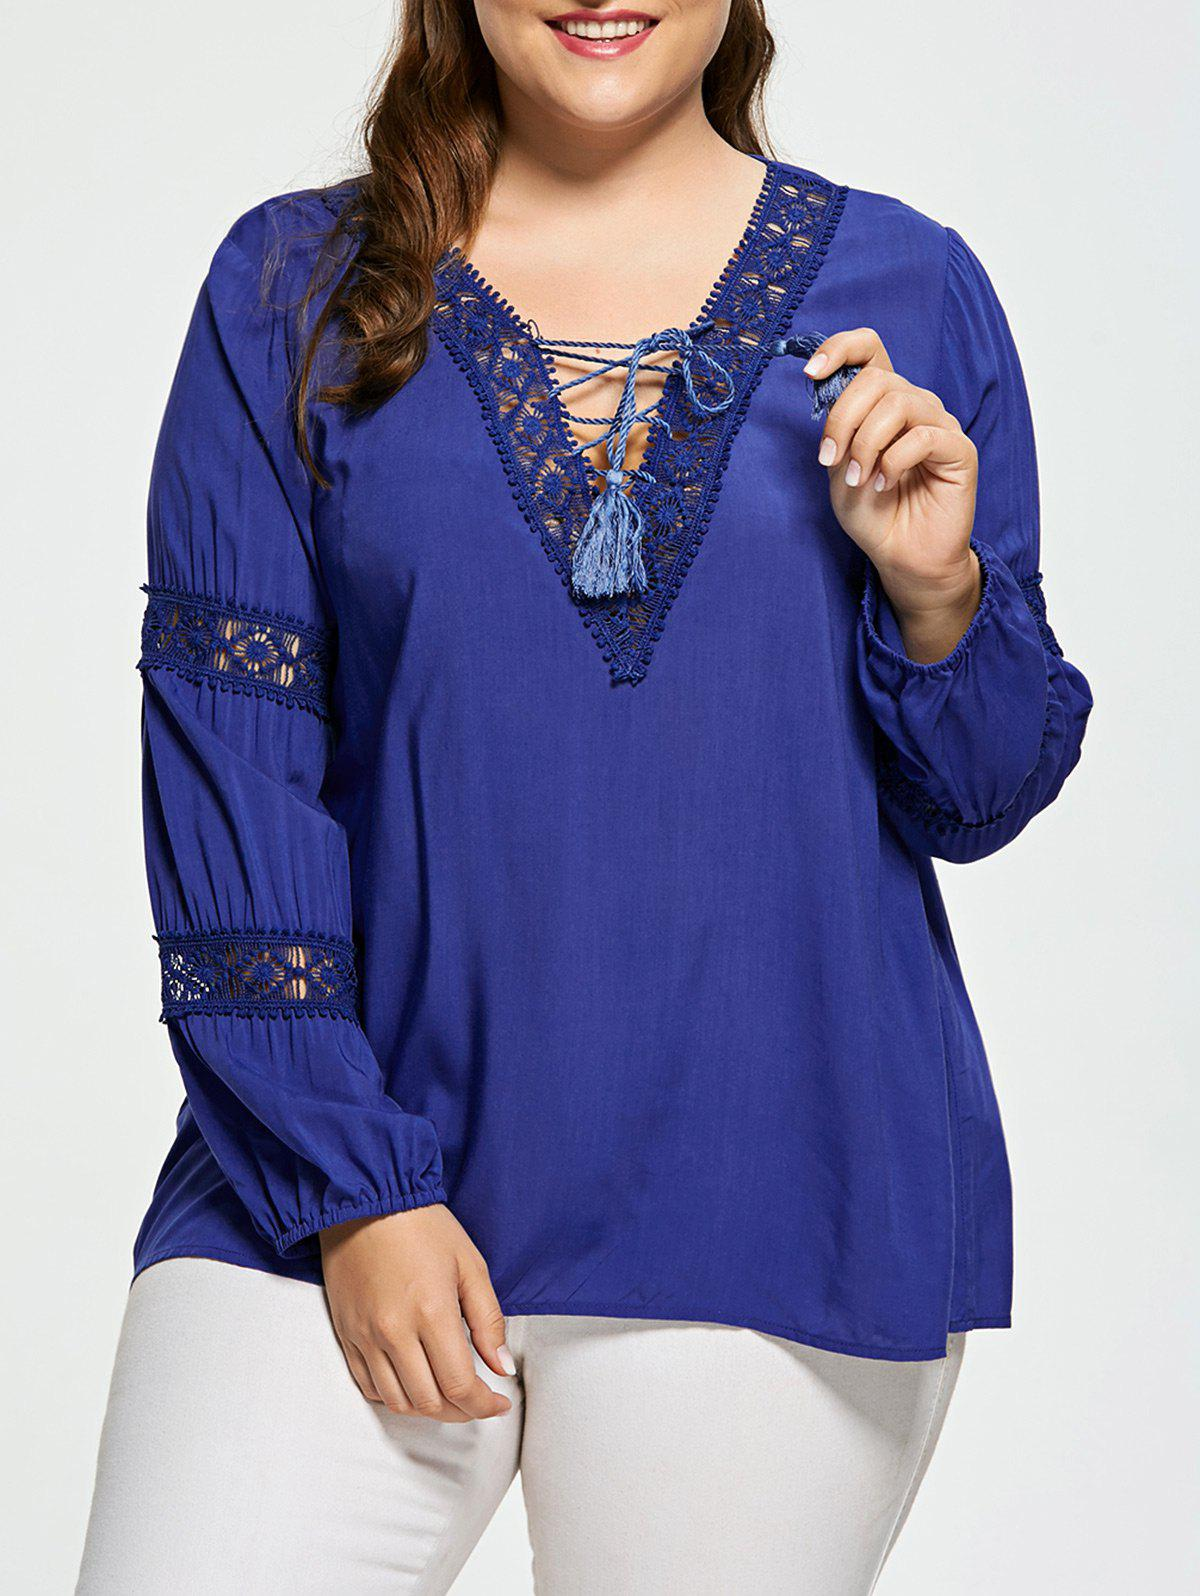 Lattice Plus Size Crochet Insert BlouseWOMEN<br><br>Size: 3XL; Color: DEEP BLUE; Material: Cotton Blends,Spandex; Shirt Length: Regular; Sleeve Length: Full; Collar: V-Neck; Style: Fashion; Season: Fall,Spring; Pattern Type: Solid; Weight: 0.2390kg; Package Contents: 1 x Blouse;